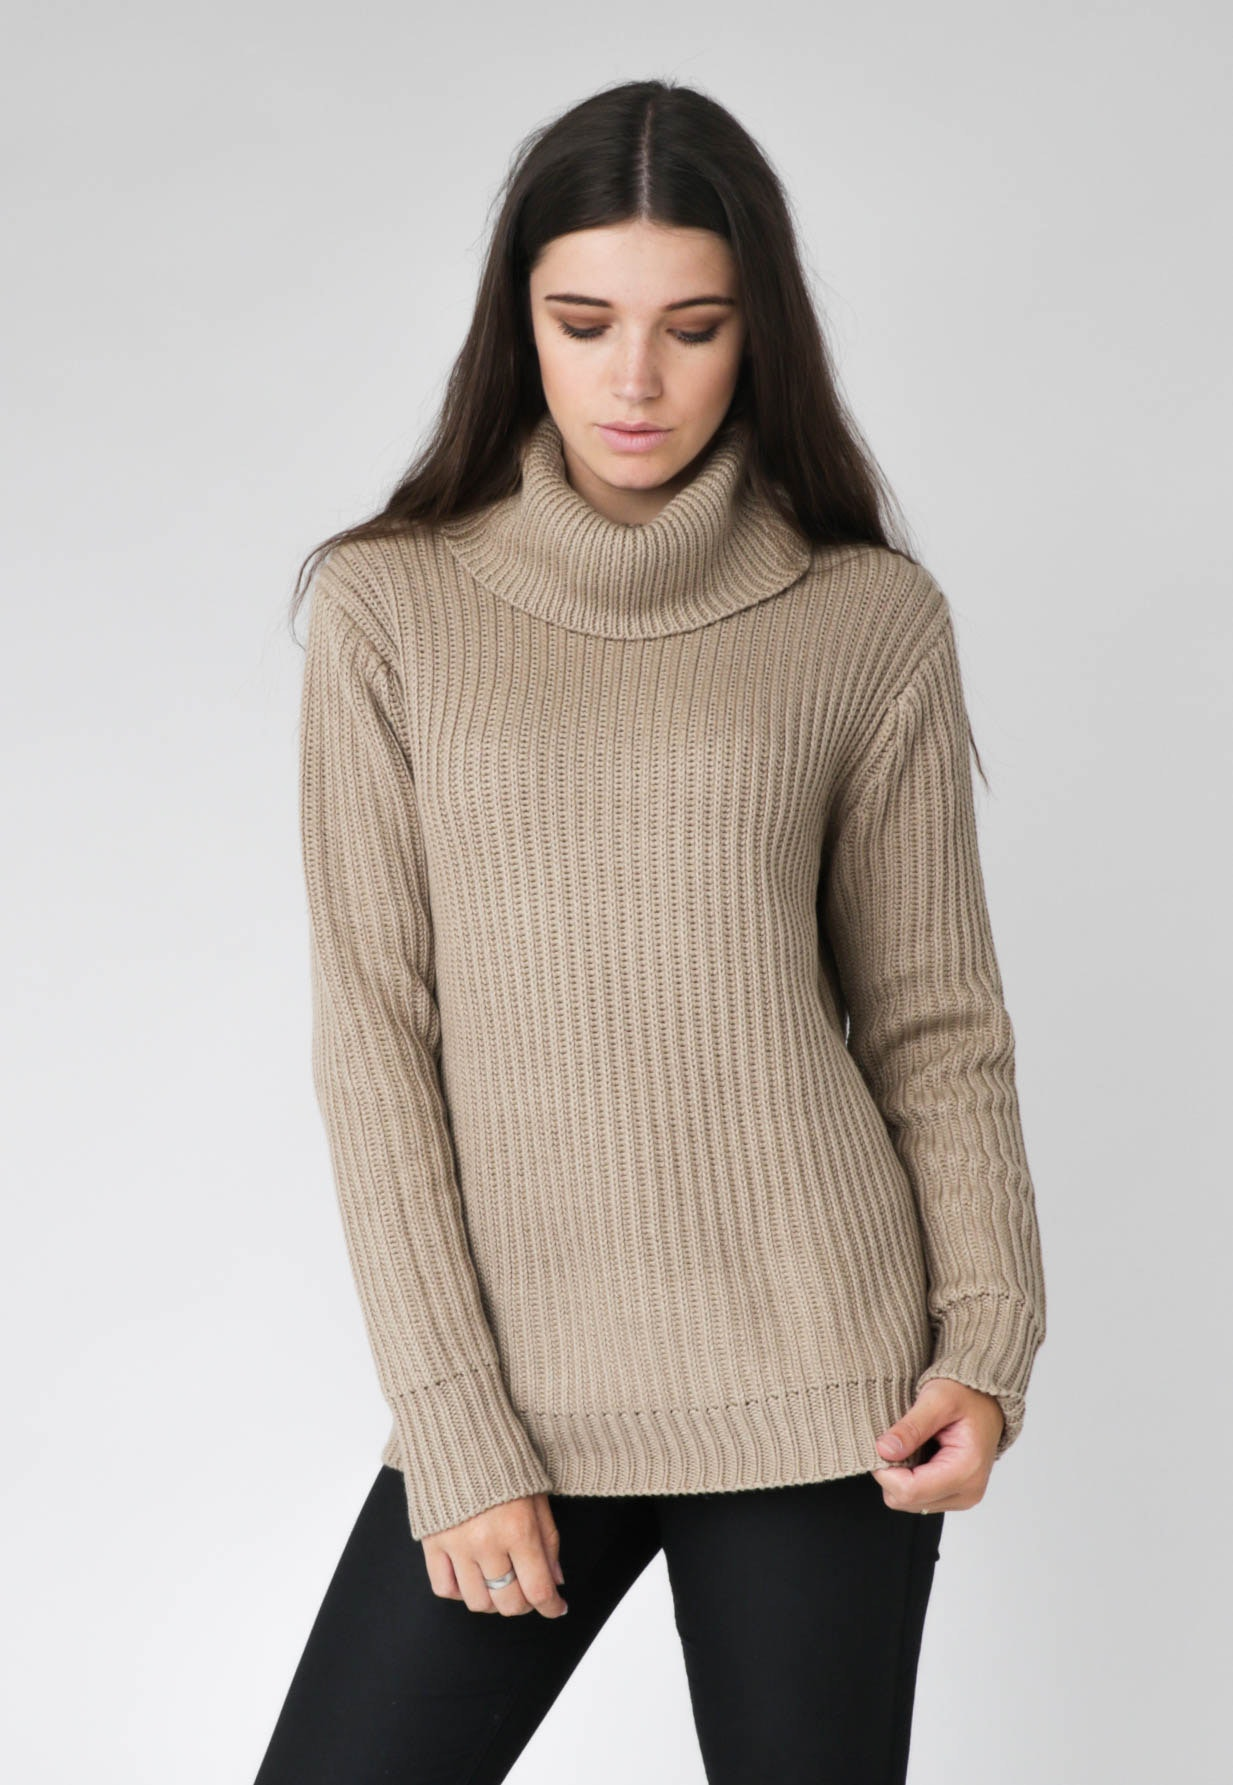 All About Eve - Holiday Knit Jumper - Camel